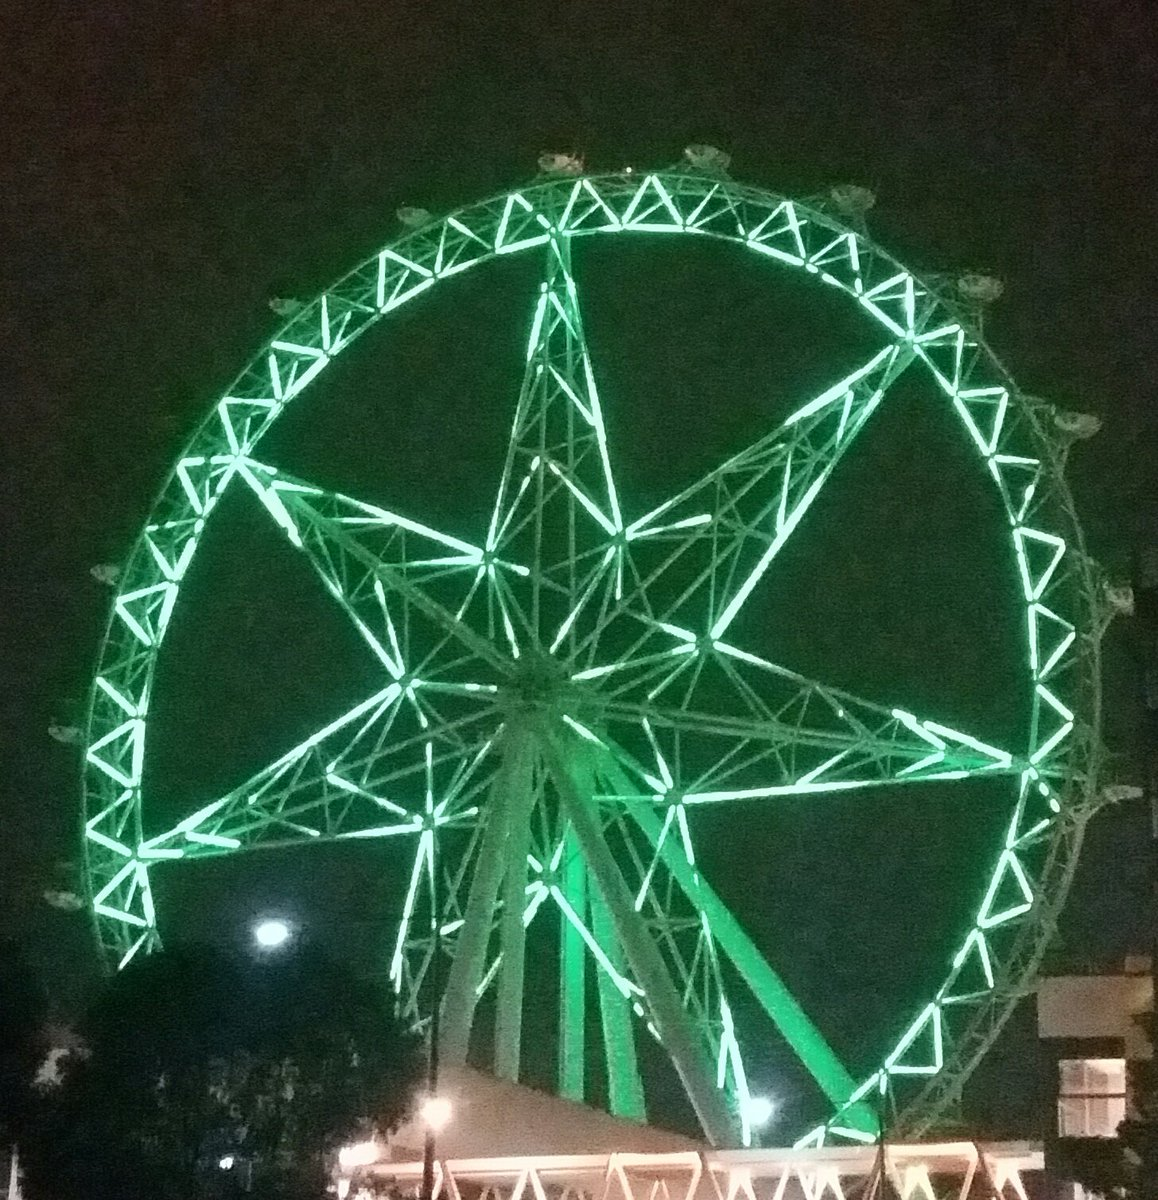 Melbourne Star Wheel illuminated in green